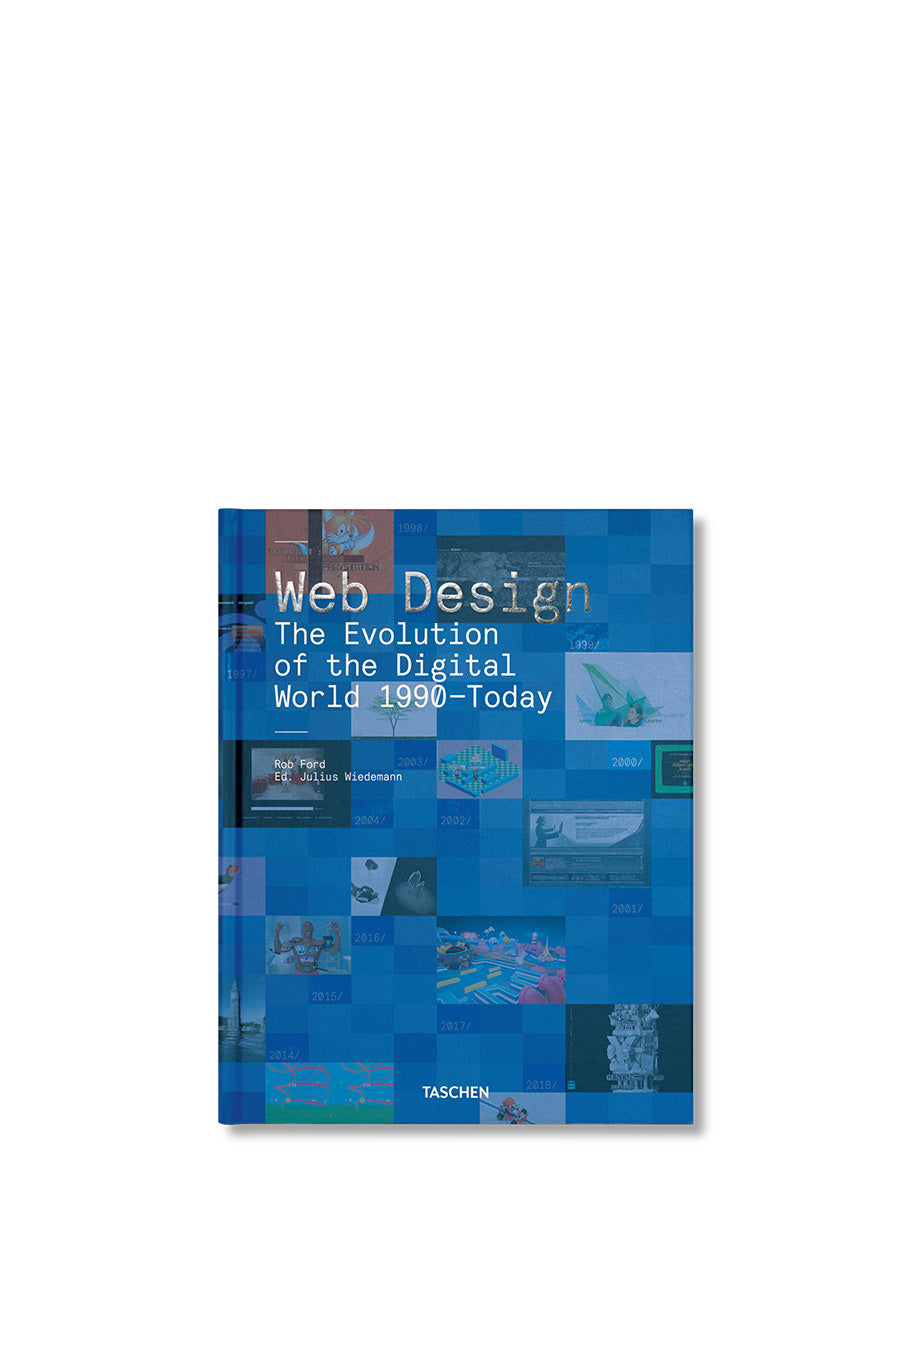 Taschen - Web Design: The Evolution of the Digital World 1990-Today | 1032 SPACE